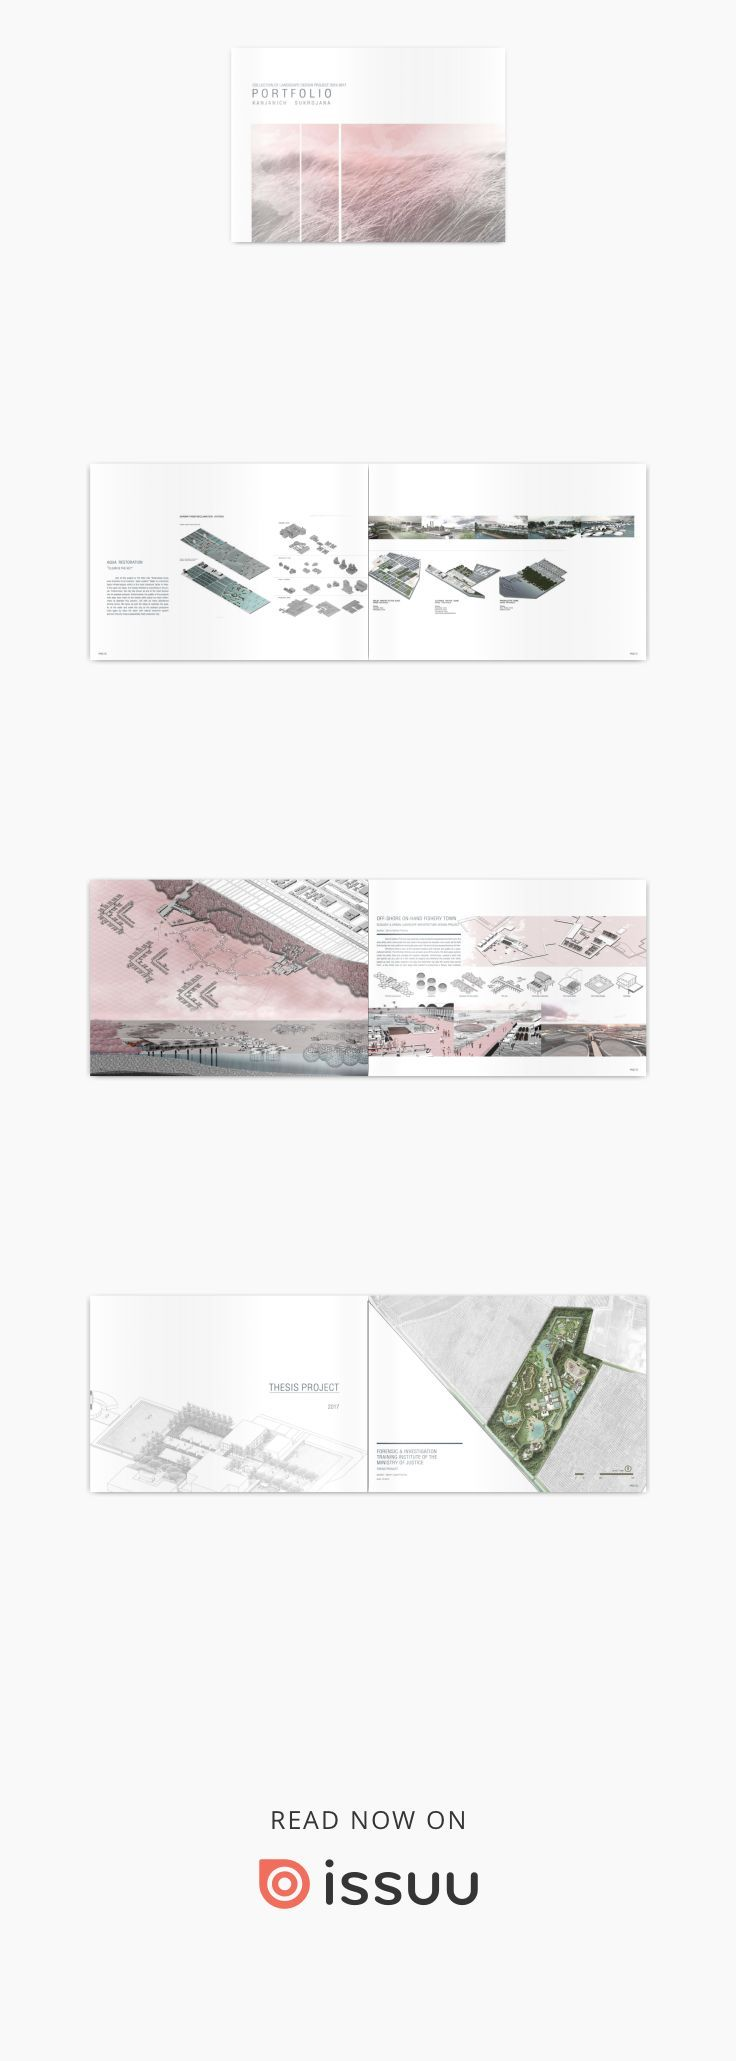 Kanjanich Sukrojana Landscape Architect Portfolio 2017  (B. L.A.) Landscape Architect A collection of Landscape Design projects 2013-2017